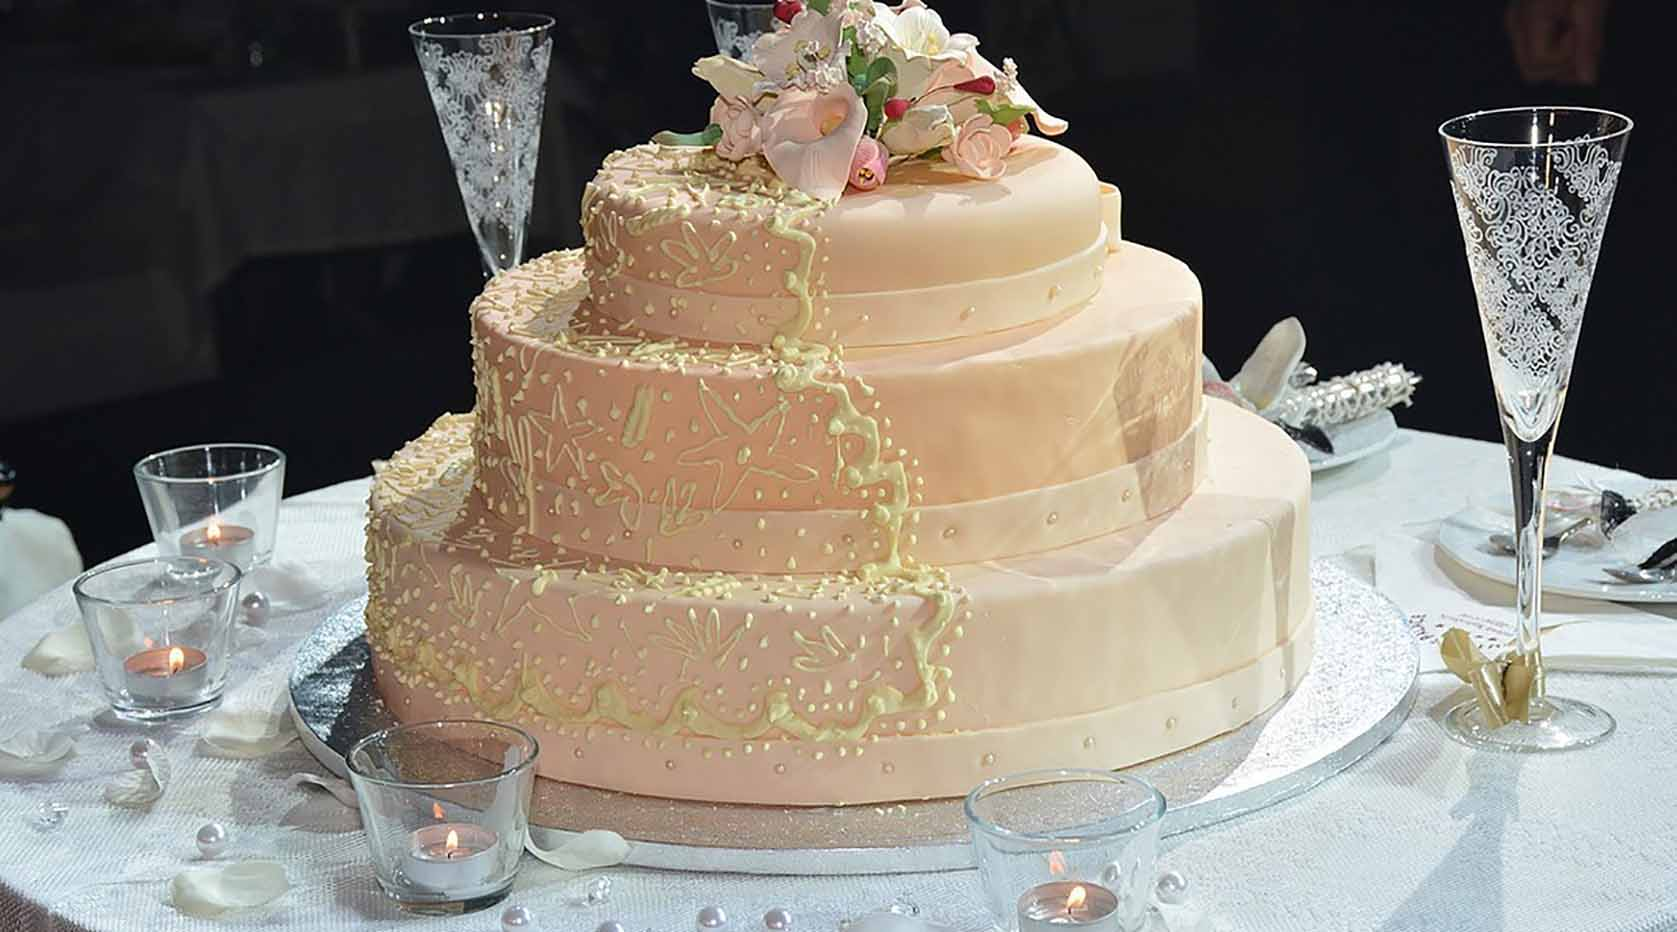 Three tiere pink wedding cake.